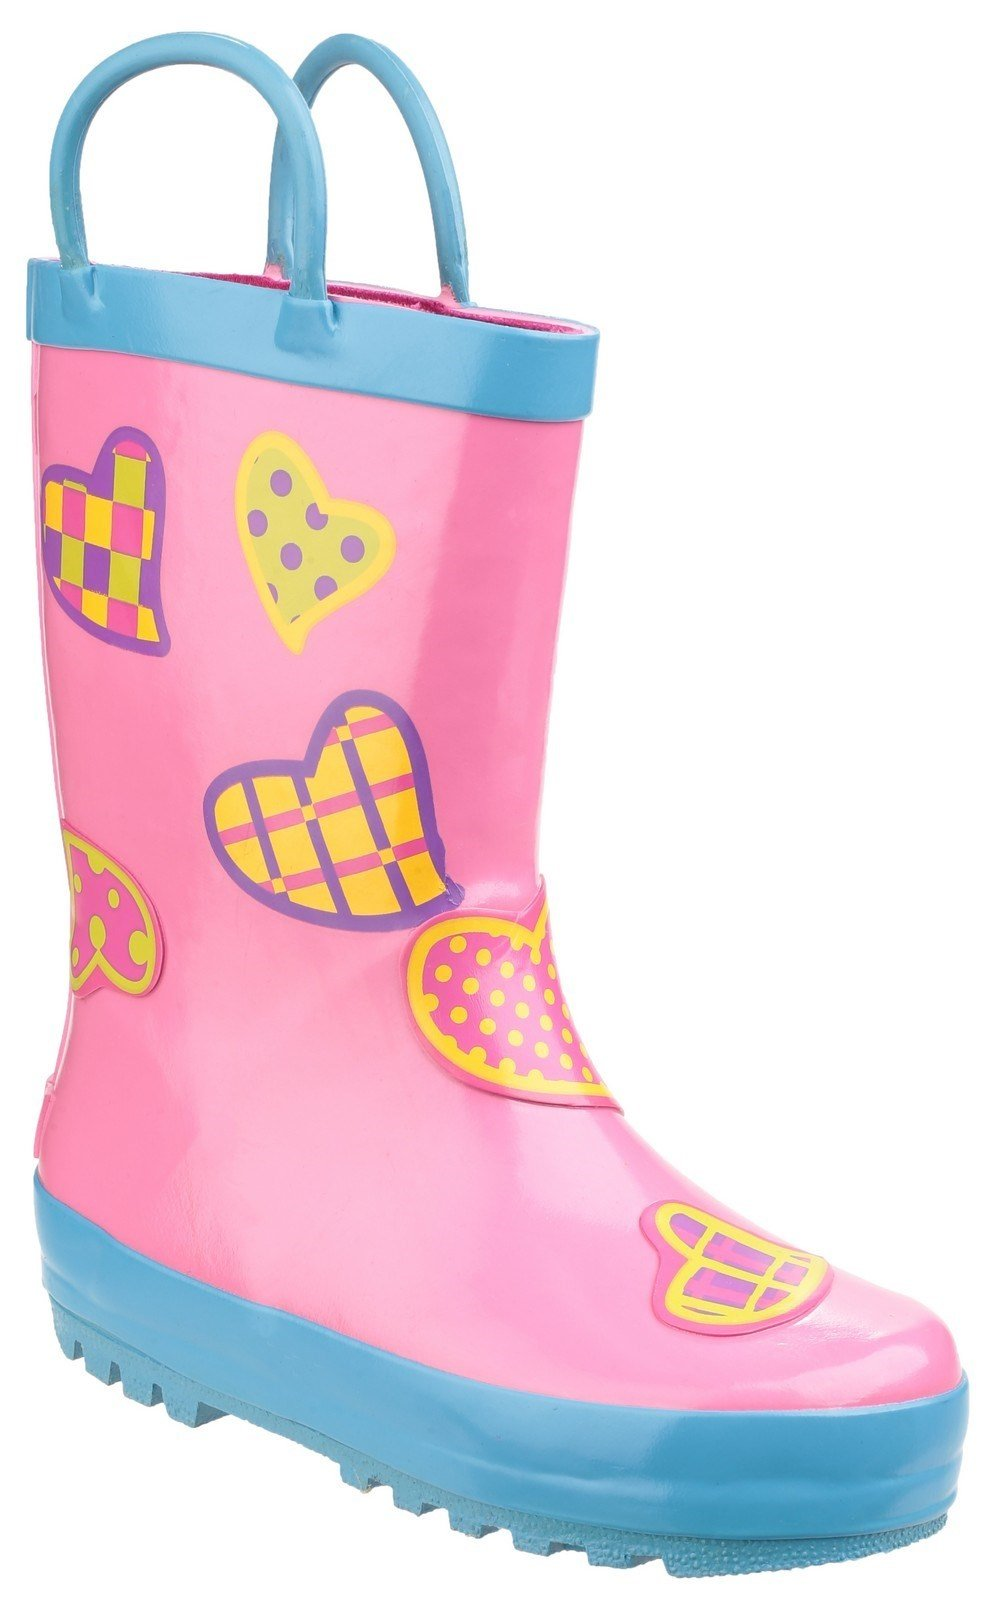 Cotswold Kids Puddle Waterproof Pull On Boot Multicolor 20962 - Hearts 4.5